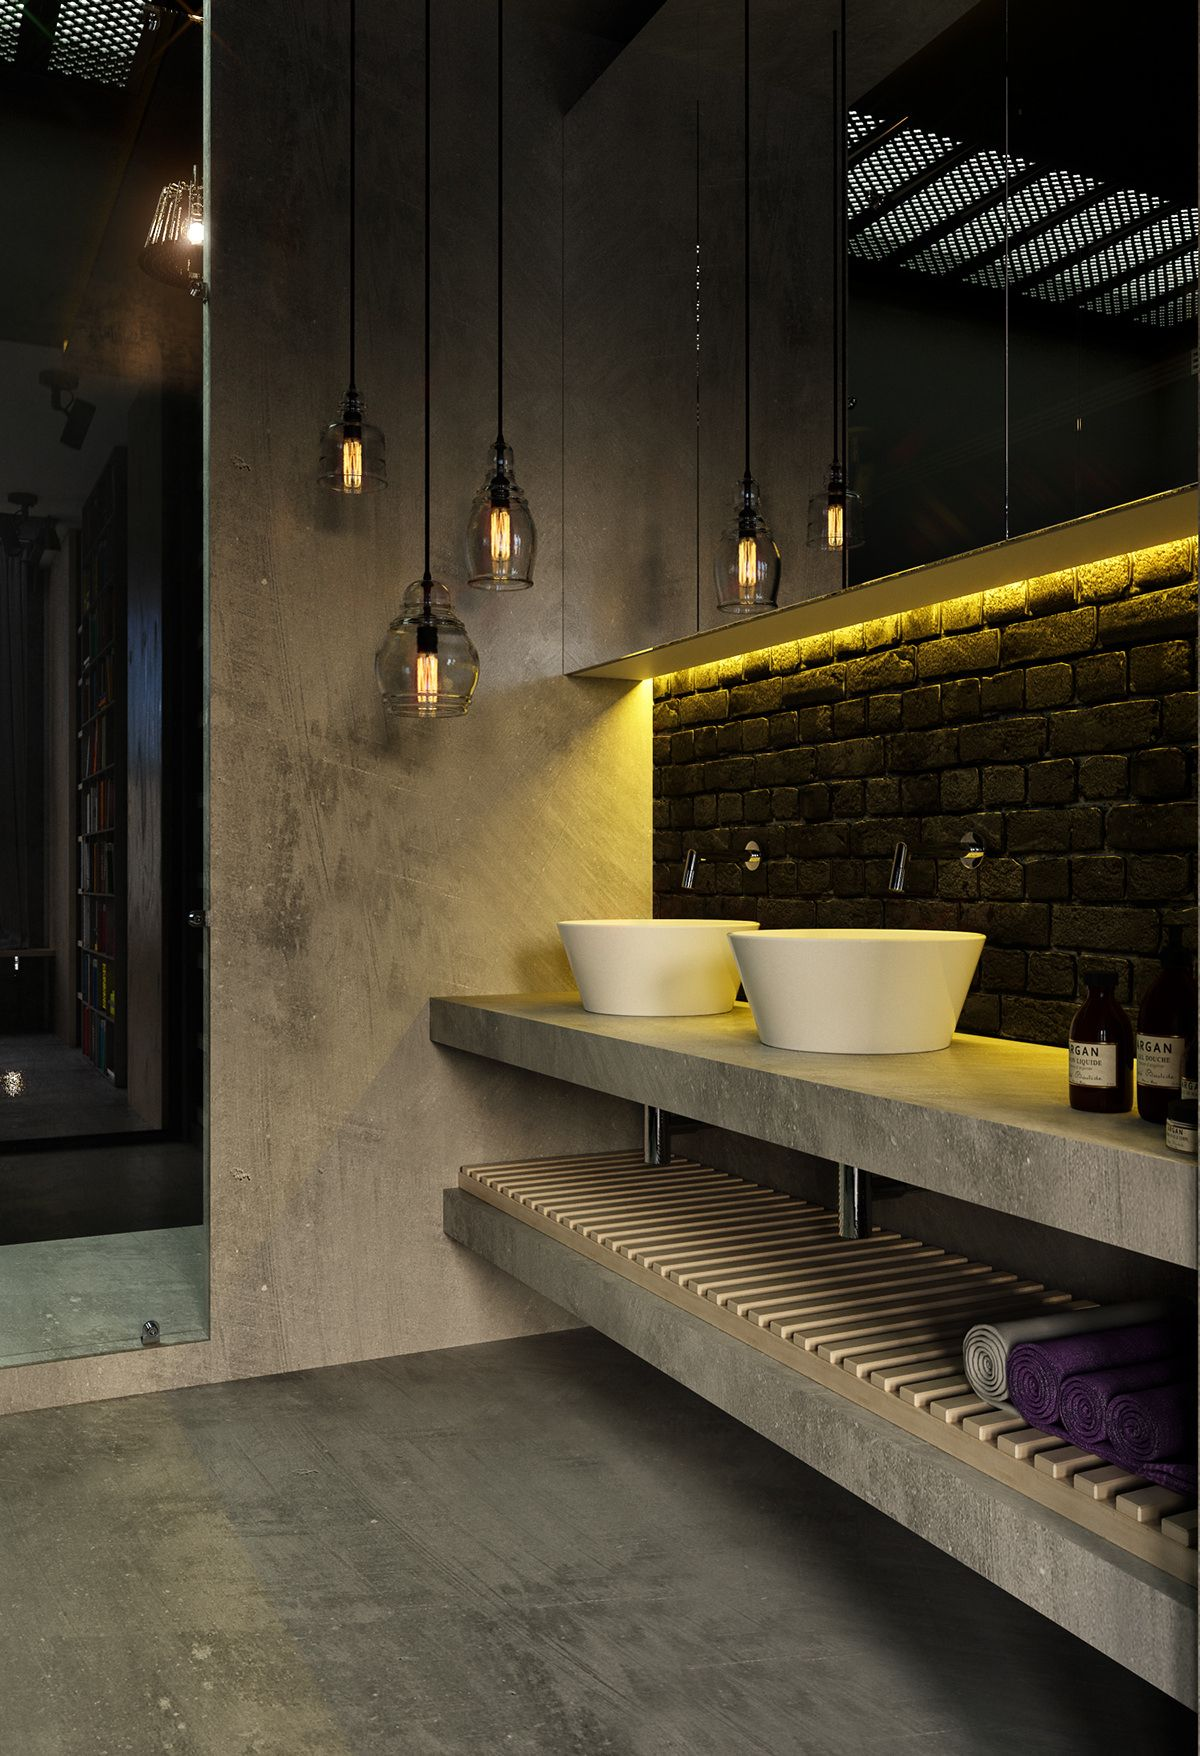 Gym Bathroom Designs Classy In Cities Where Housing Space Is At A Premium The Conversion Of Design Ideas